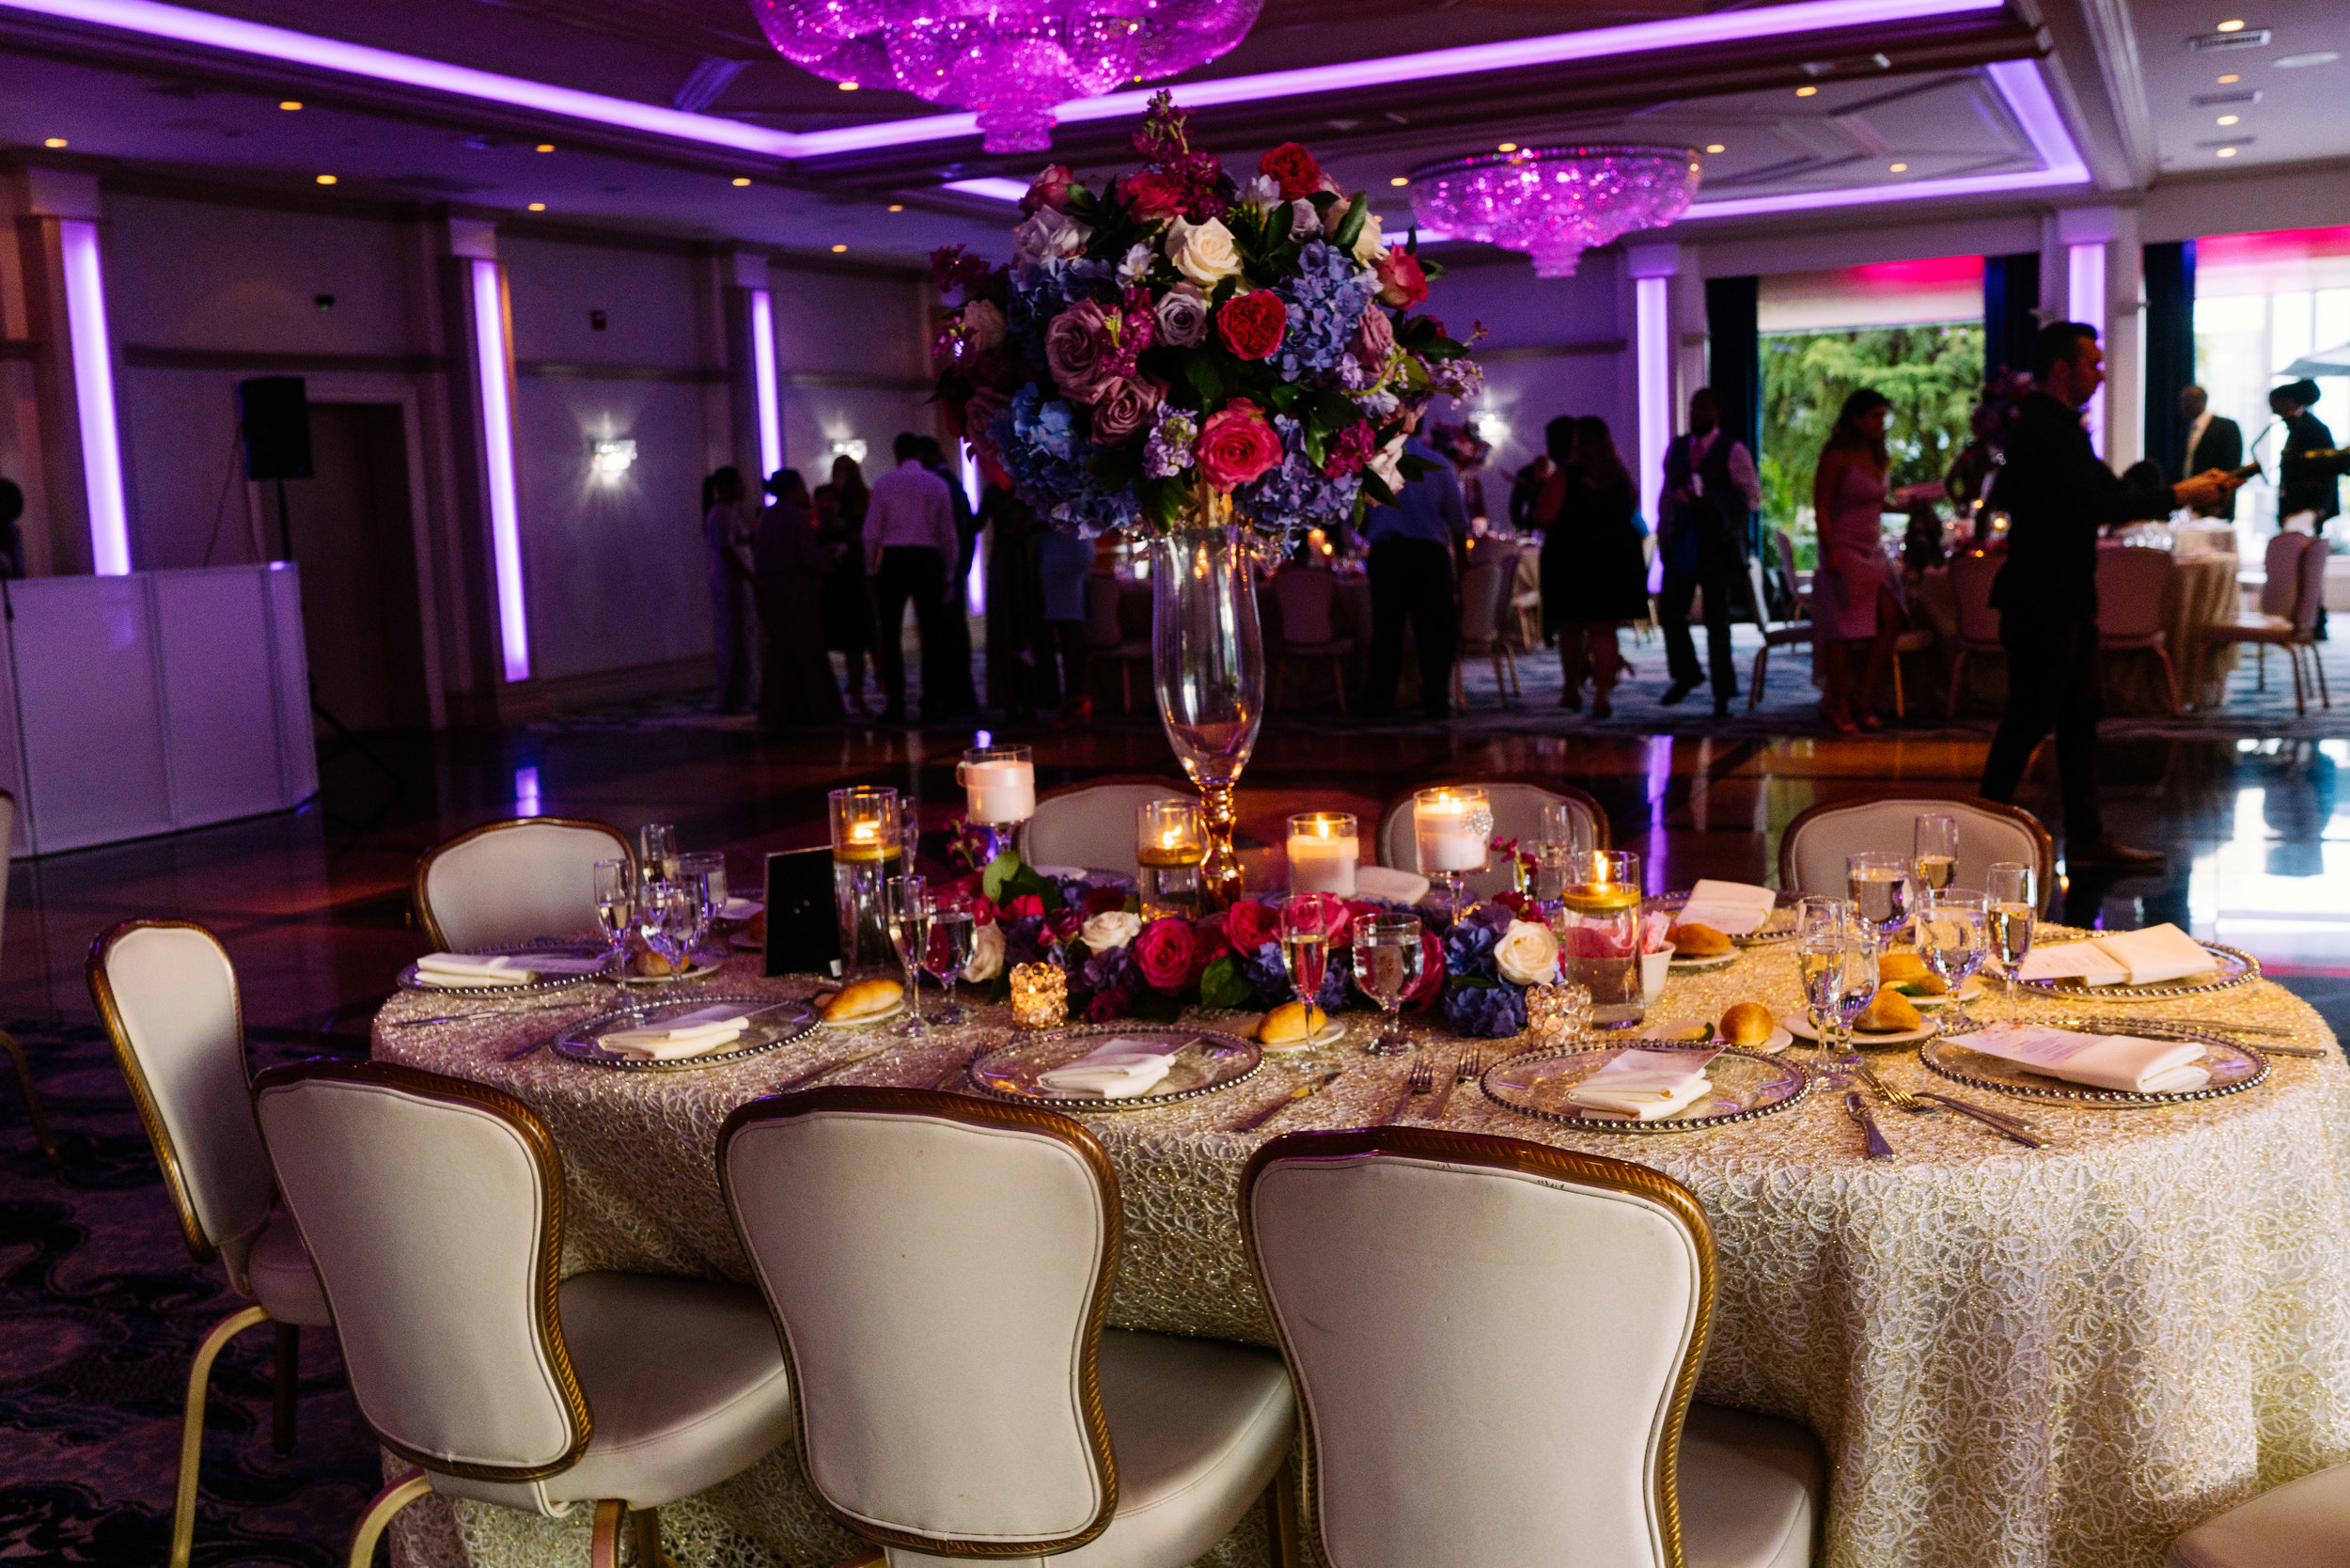 New York City Summer Wedding, Shades of Purple and Pink Flowers set on a large centerpiece with candles every where.  Linens provided by The Finishing Touch New York